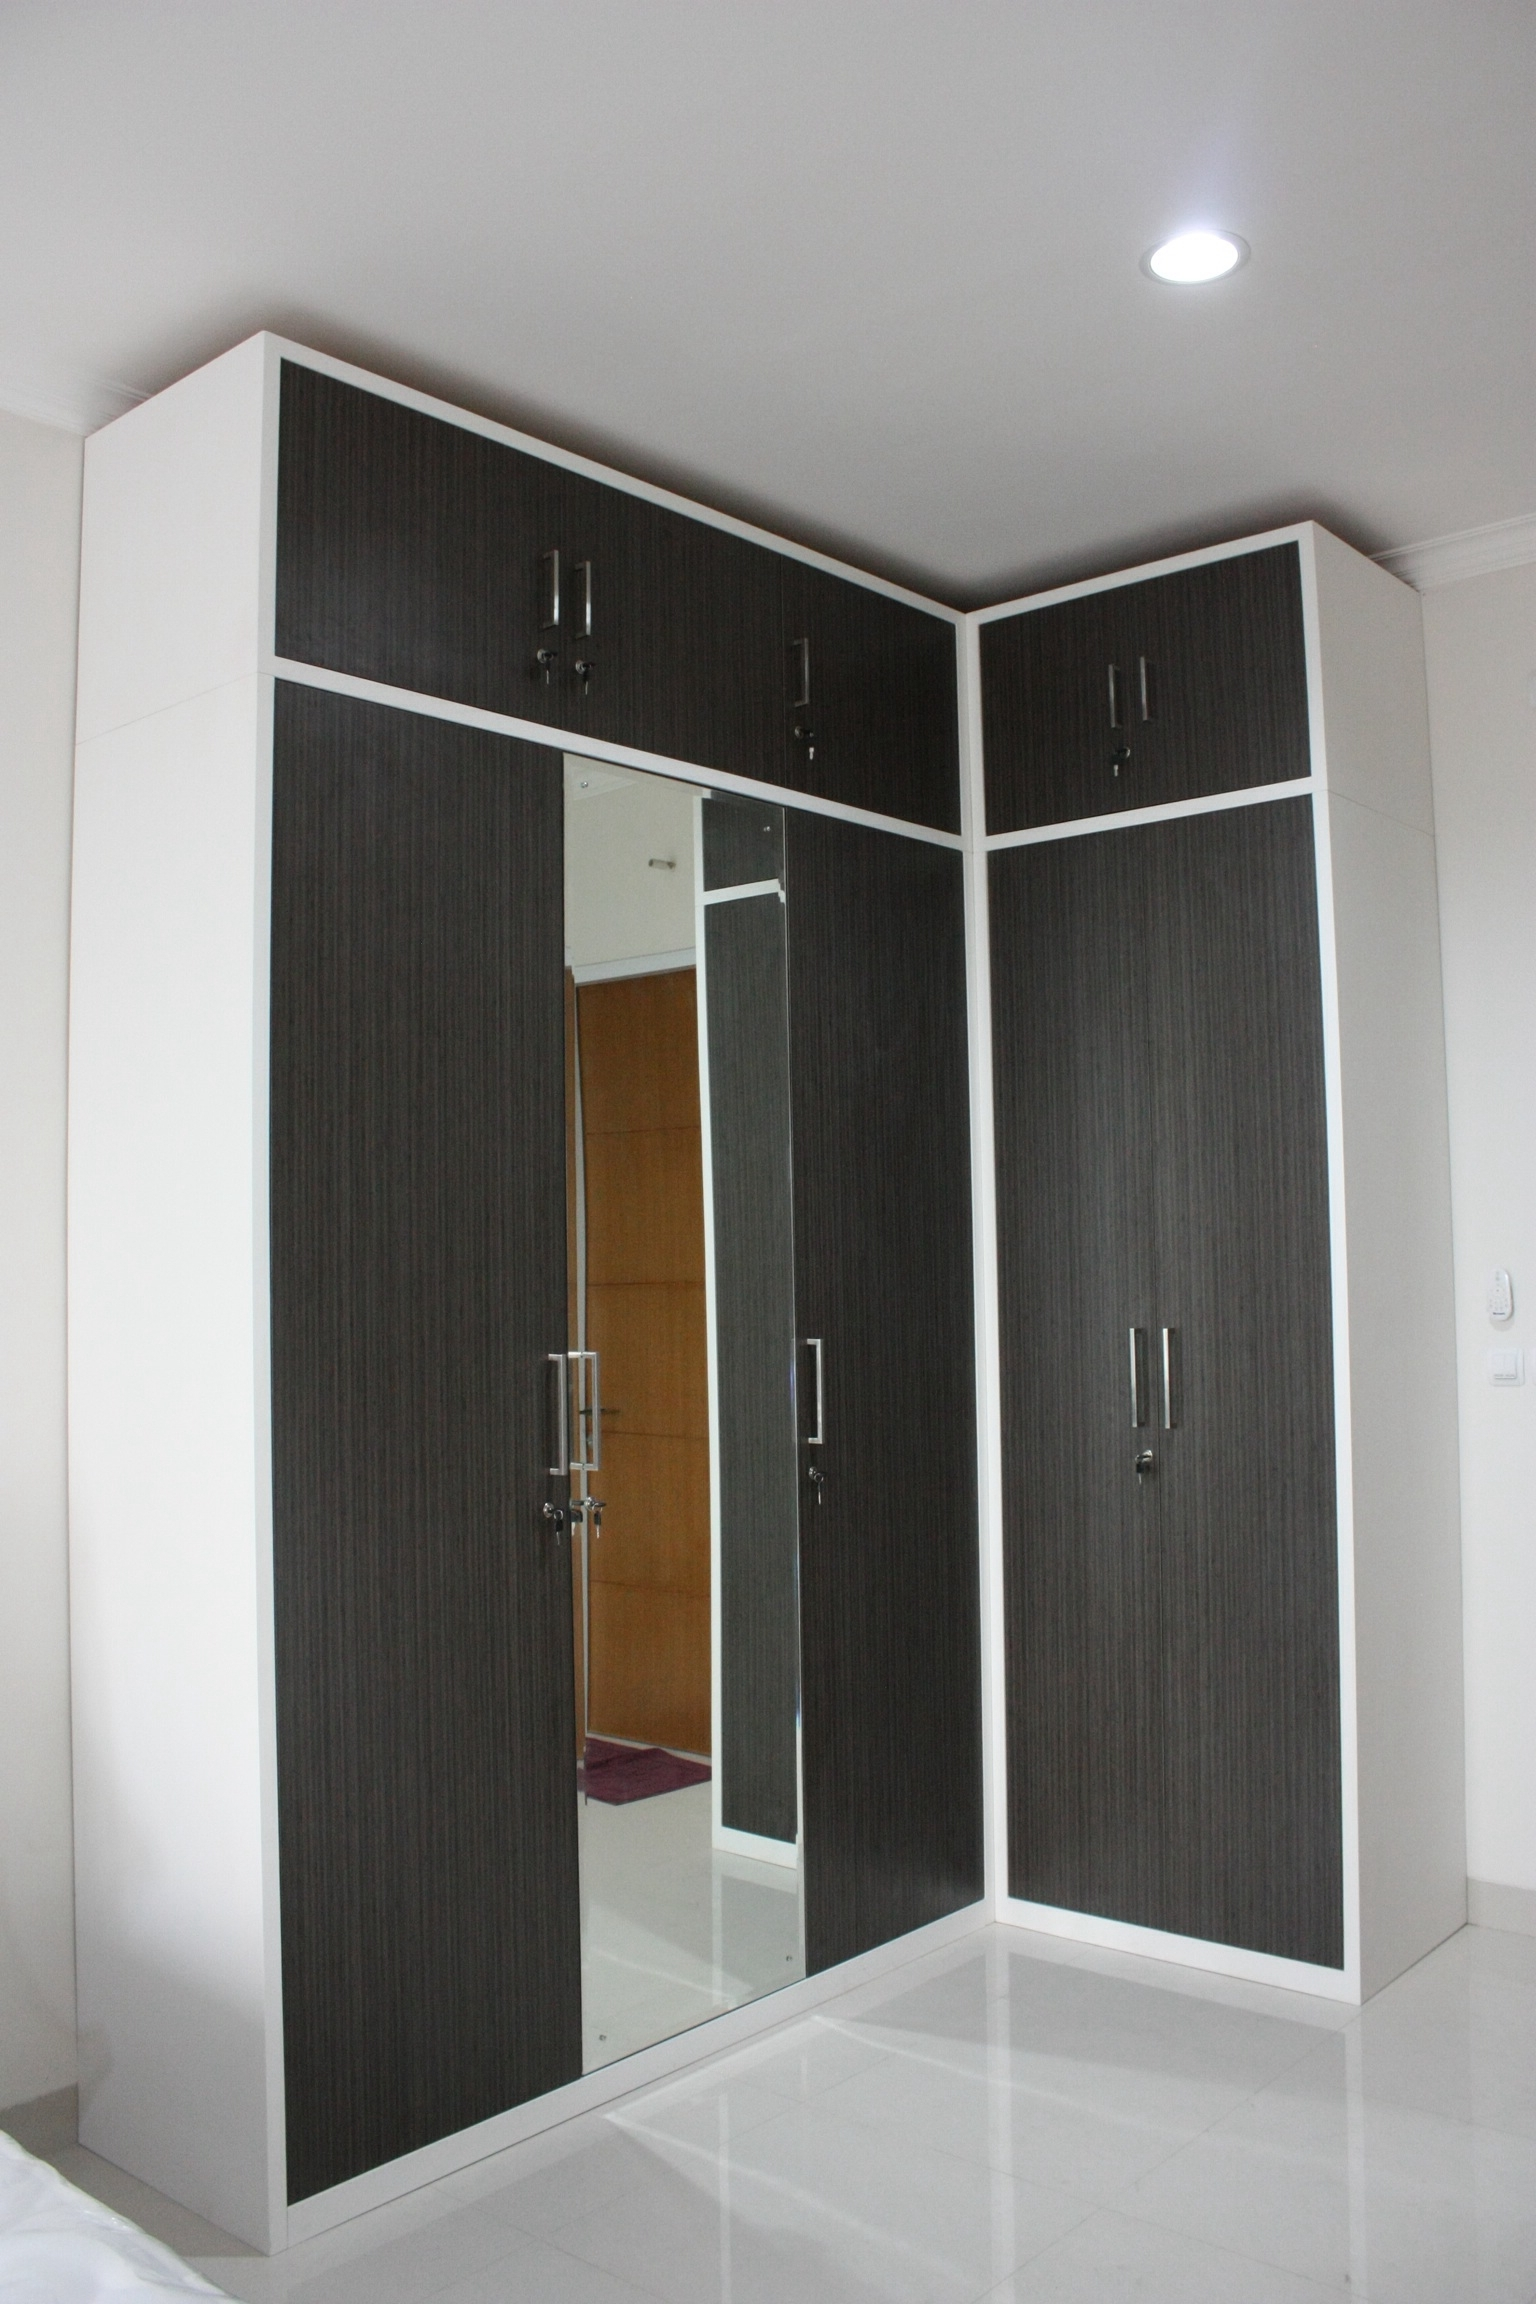 Most Popular Customized L Shaped Wardrobe In Japanese Bamboo Hpl Finish, A Regarding Black Corner Wardrobes (View 10 of 15)